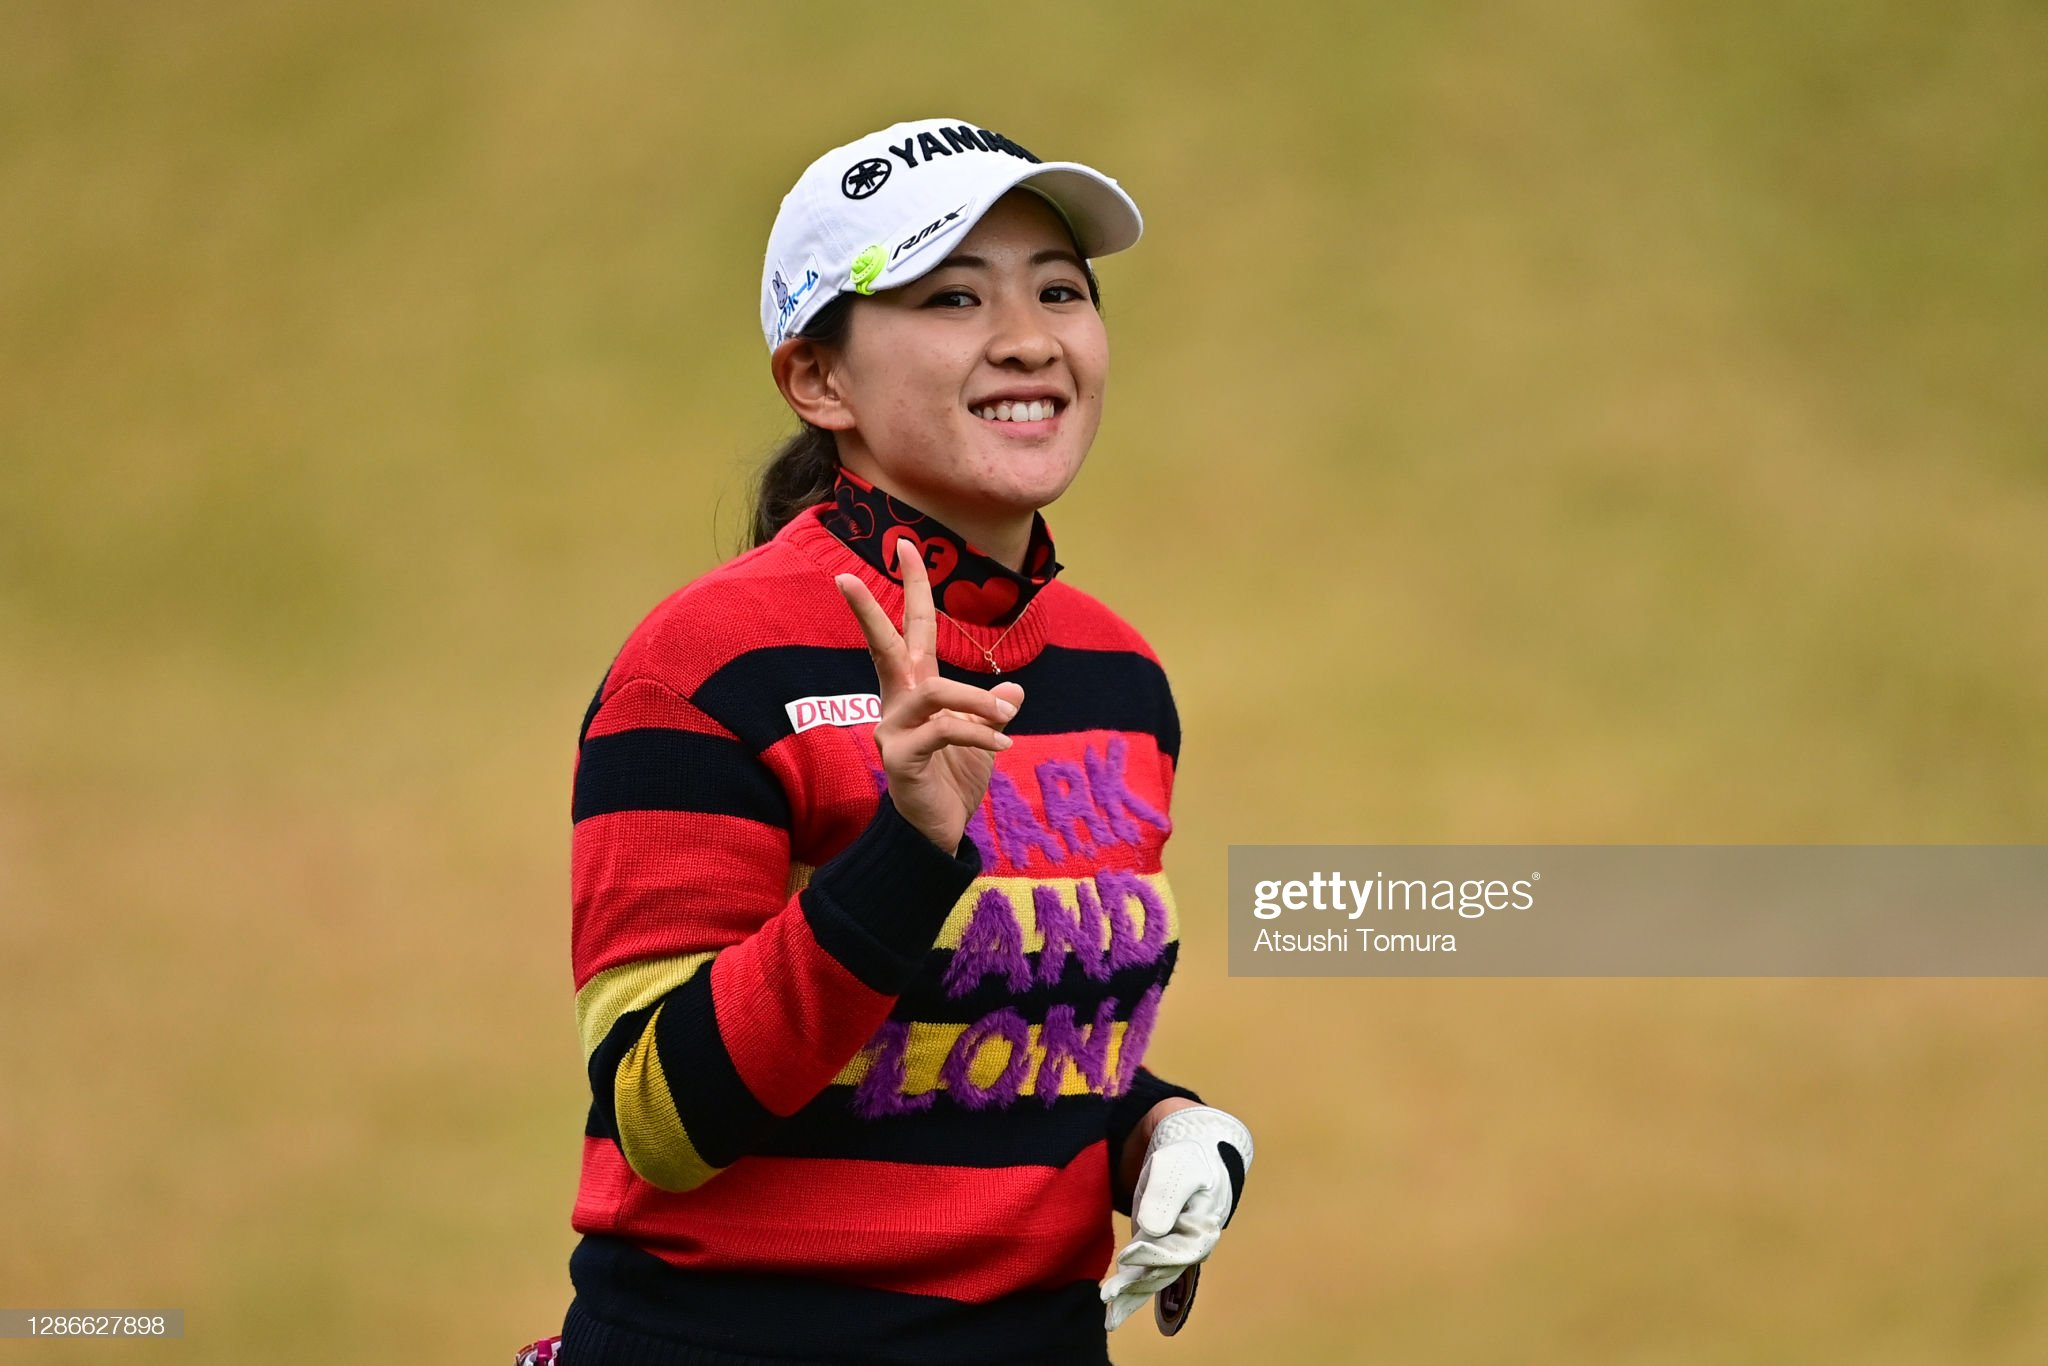 https://media.gettyimages.com/photos/kana-nagai-of-japan-poses-after-her-second-shot-on-the-6th-hole-the-picture-id1286627898?s=2048x2048